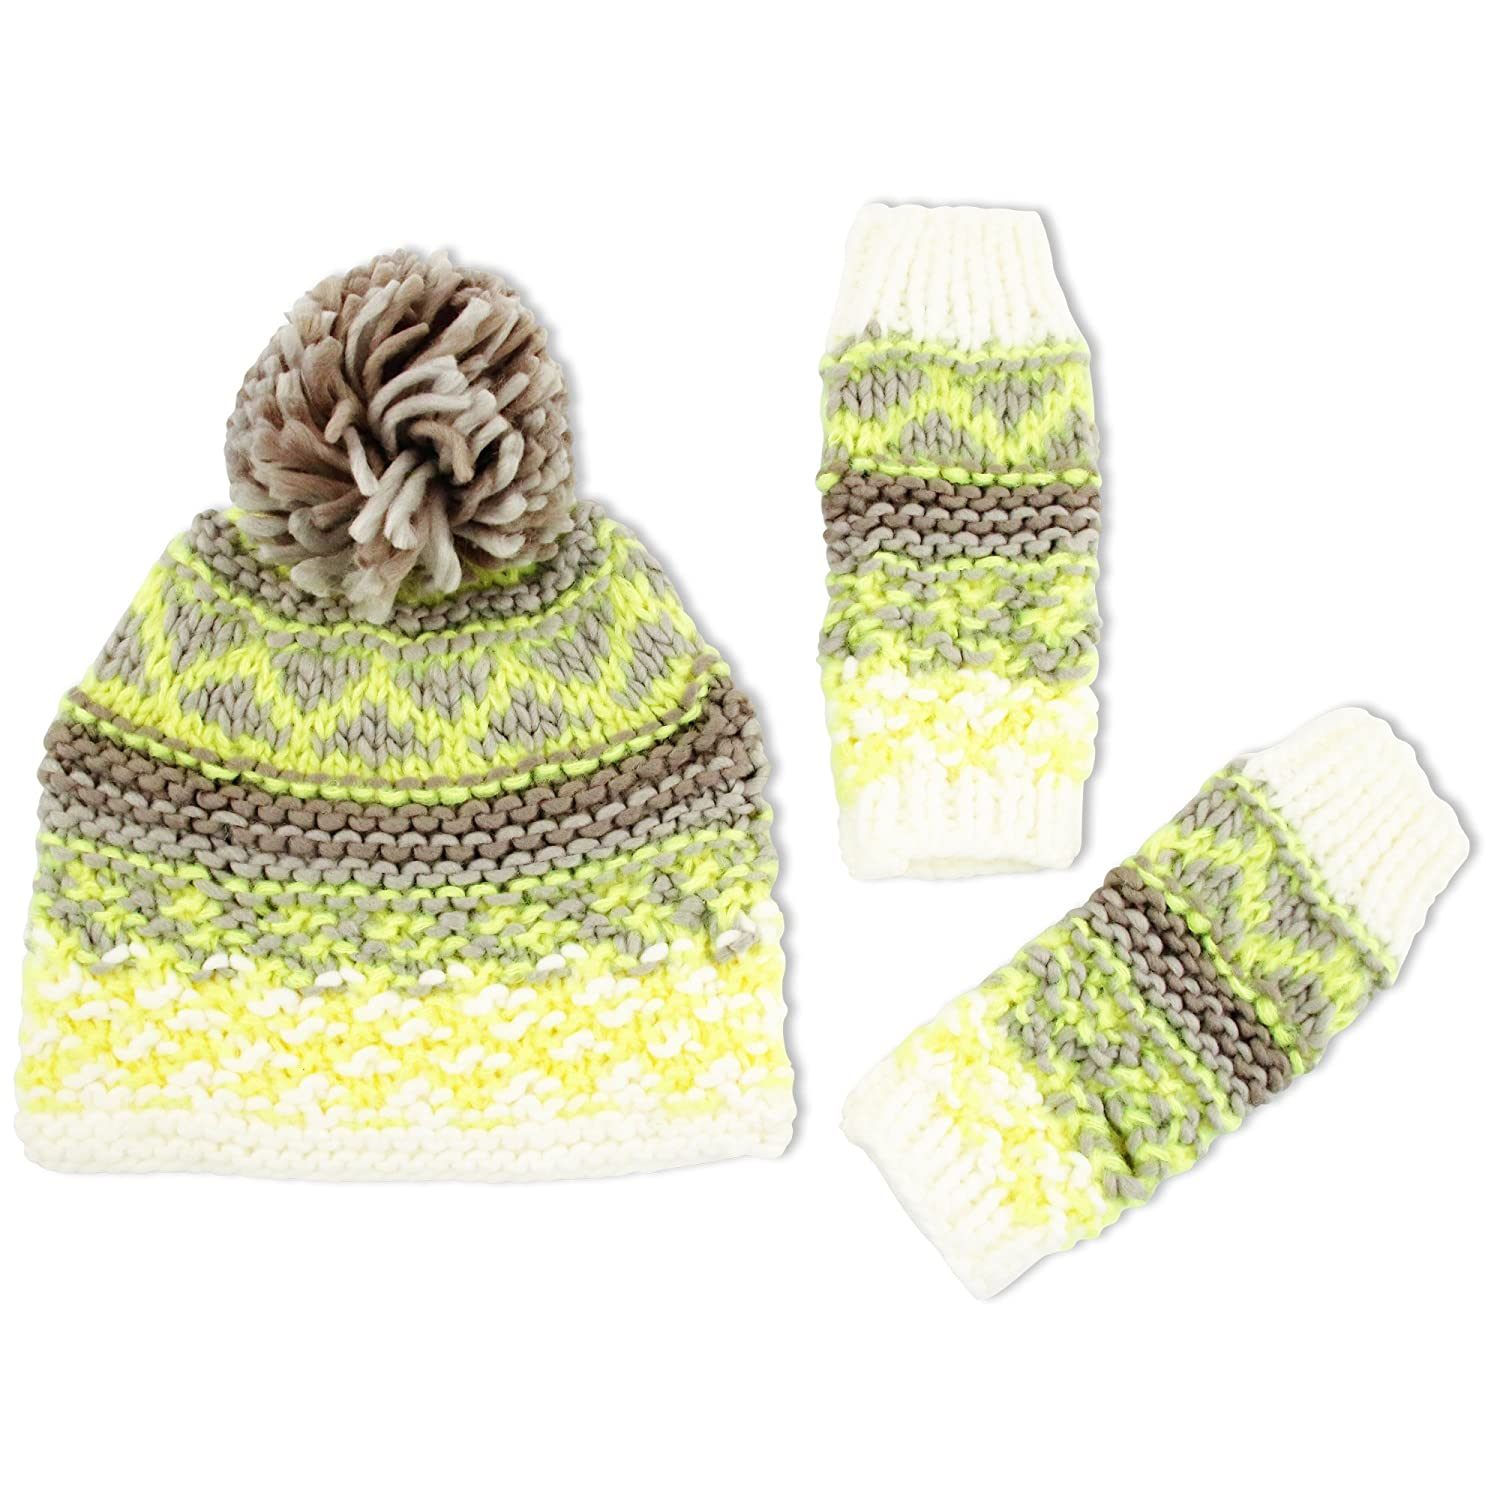 ABG Accessories Girls Chunky Knit Acrylic Beanie Hat with Yarn Pom and Matching Hand Warmers